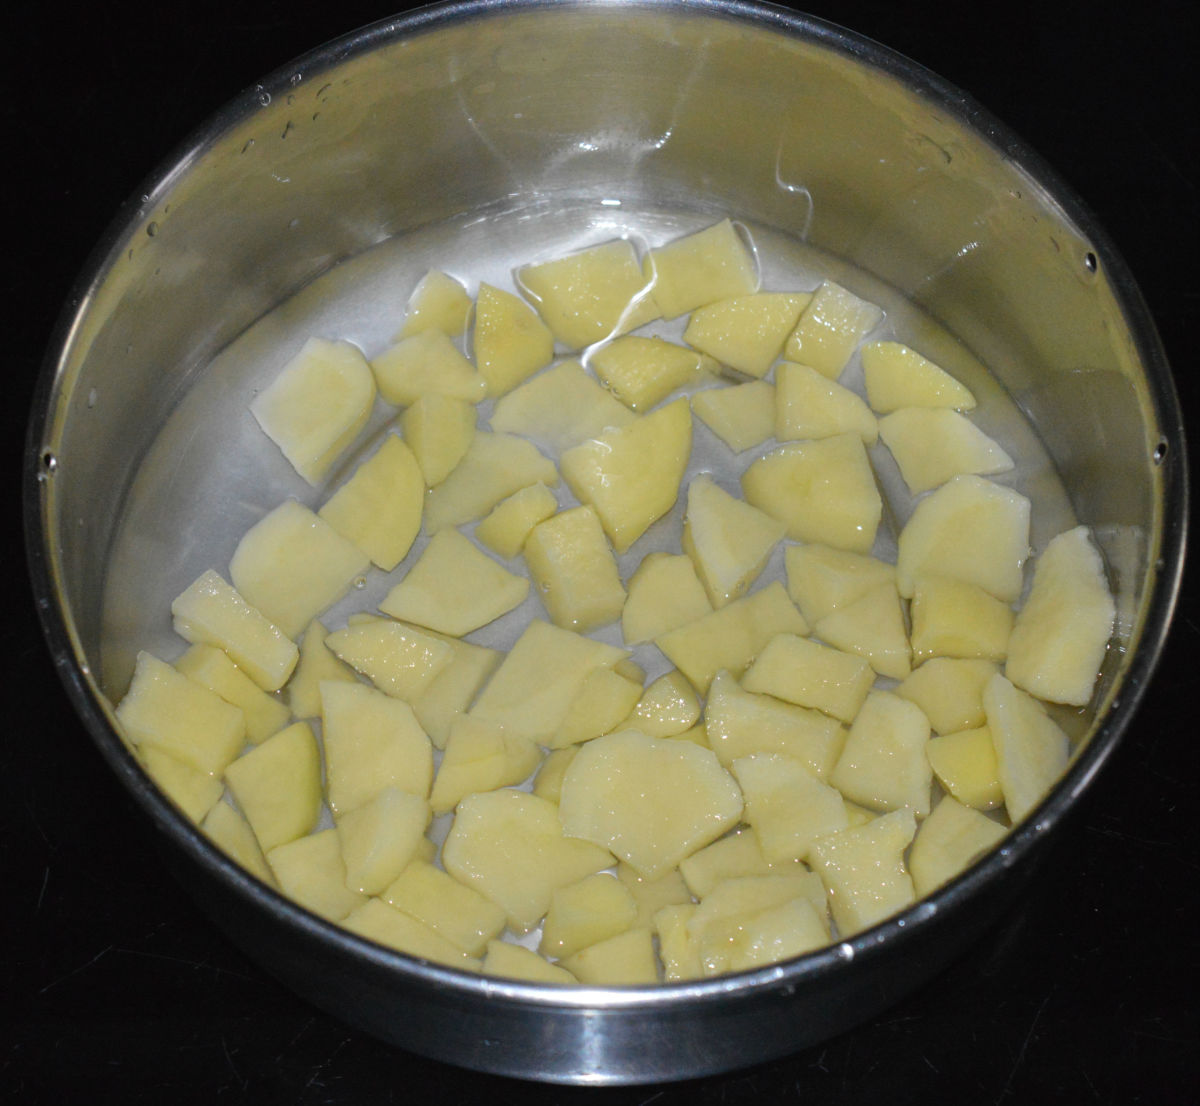 Step one: Boil potato cubes in water till they become soft. Mash them. Set aside.